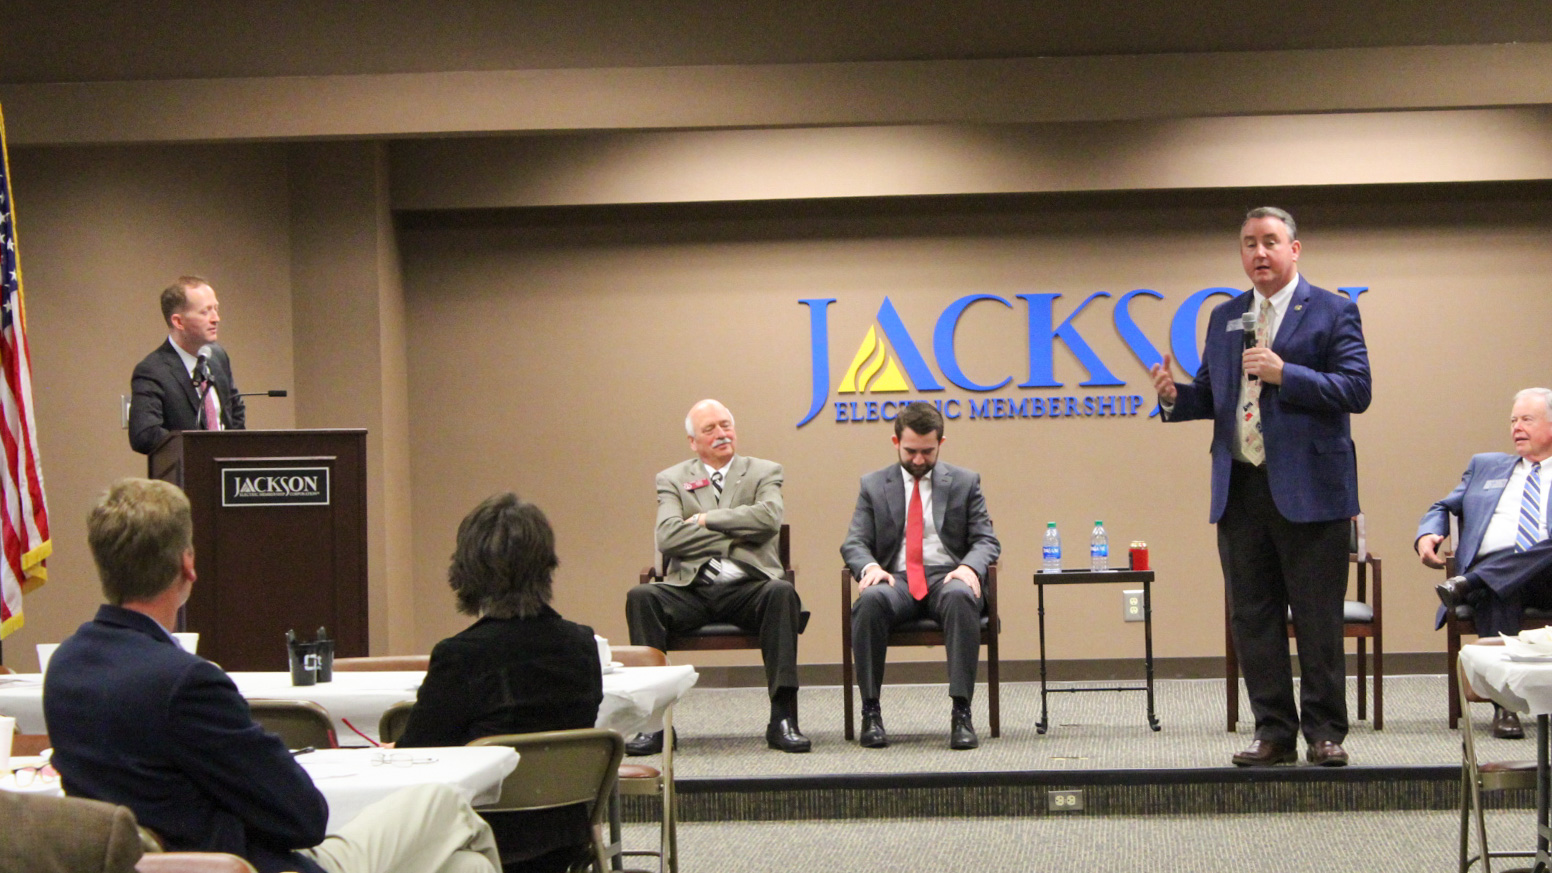 Jackson County monthly Business at Breakfast meetings